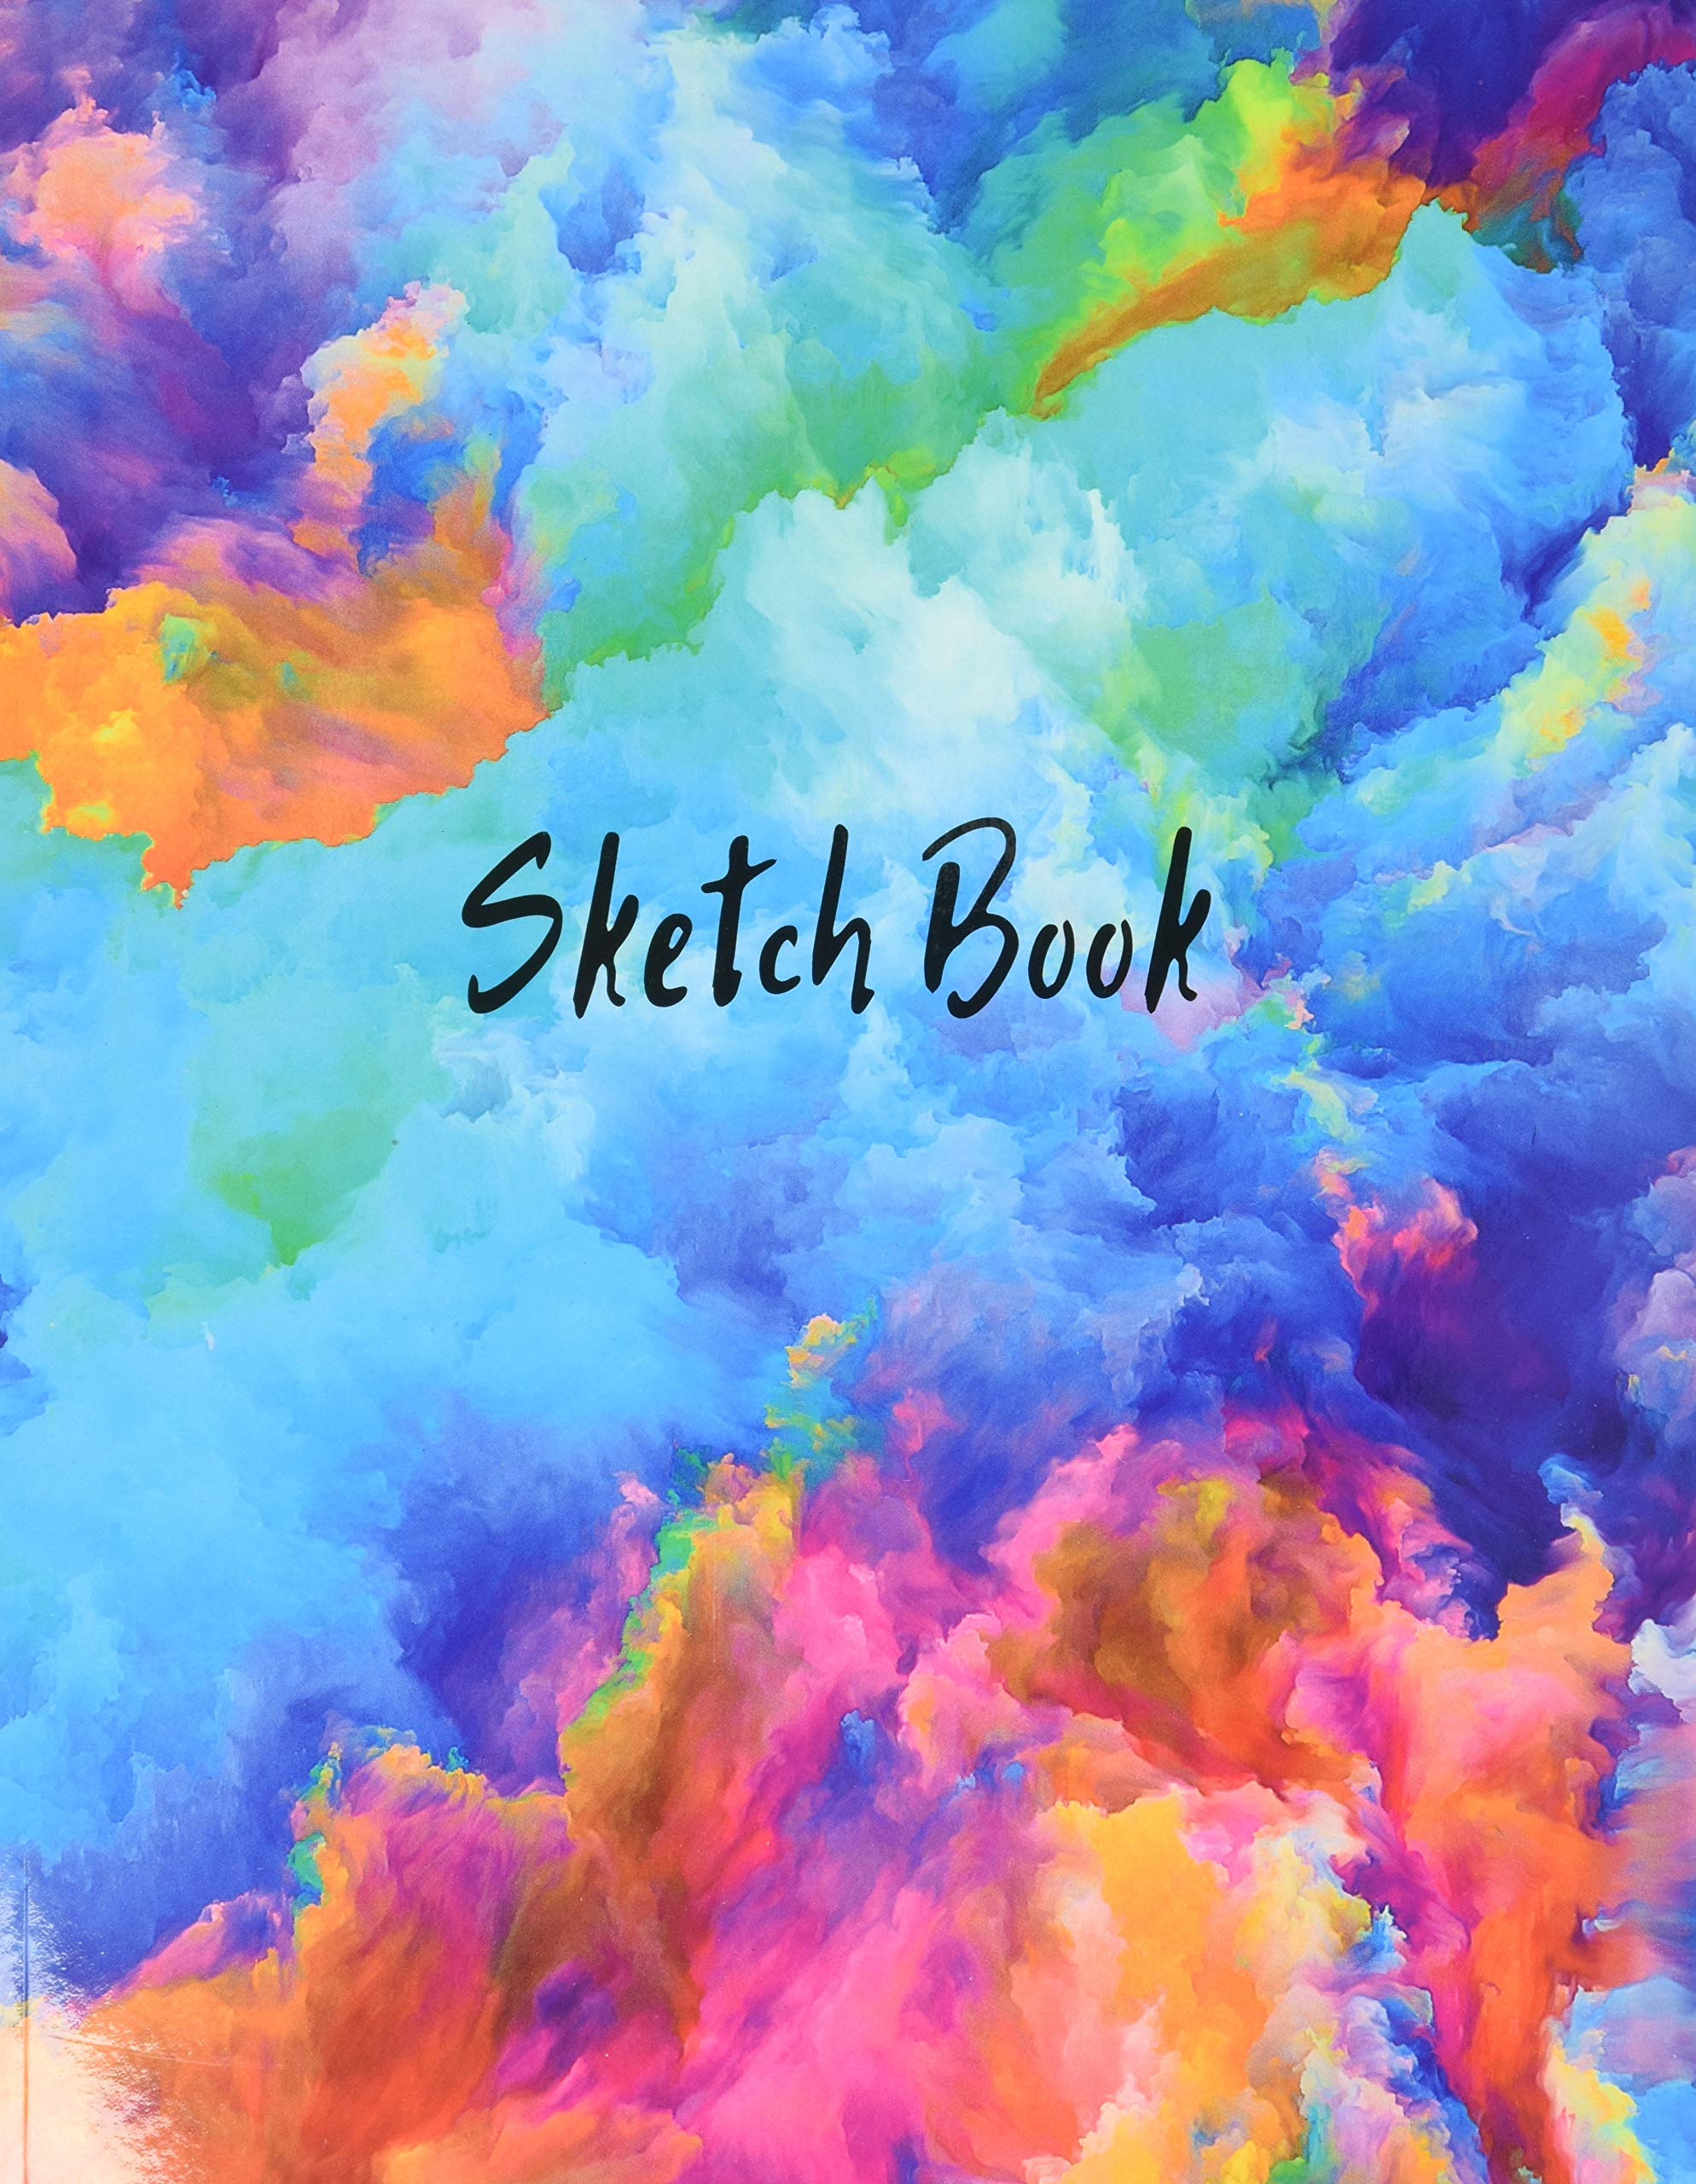 Sketch Book: Notebook for Drawing, Writing, Painting, Sketching or Doodling, 120 Pages, 8.5×11 (Premium Abstract Cover vol.4)